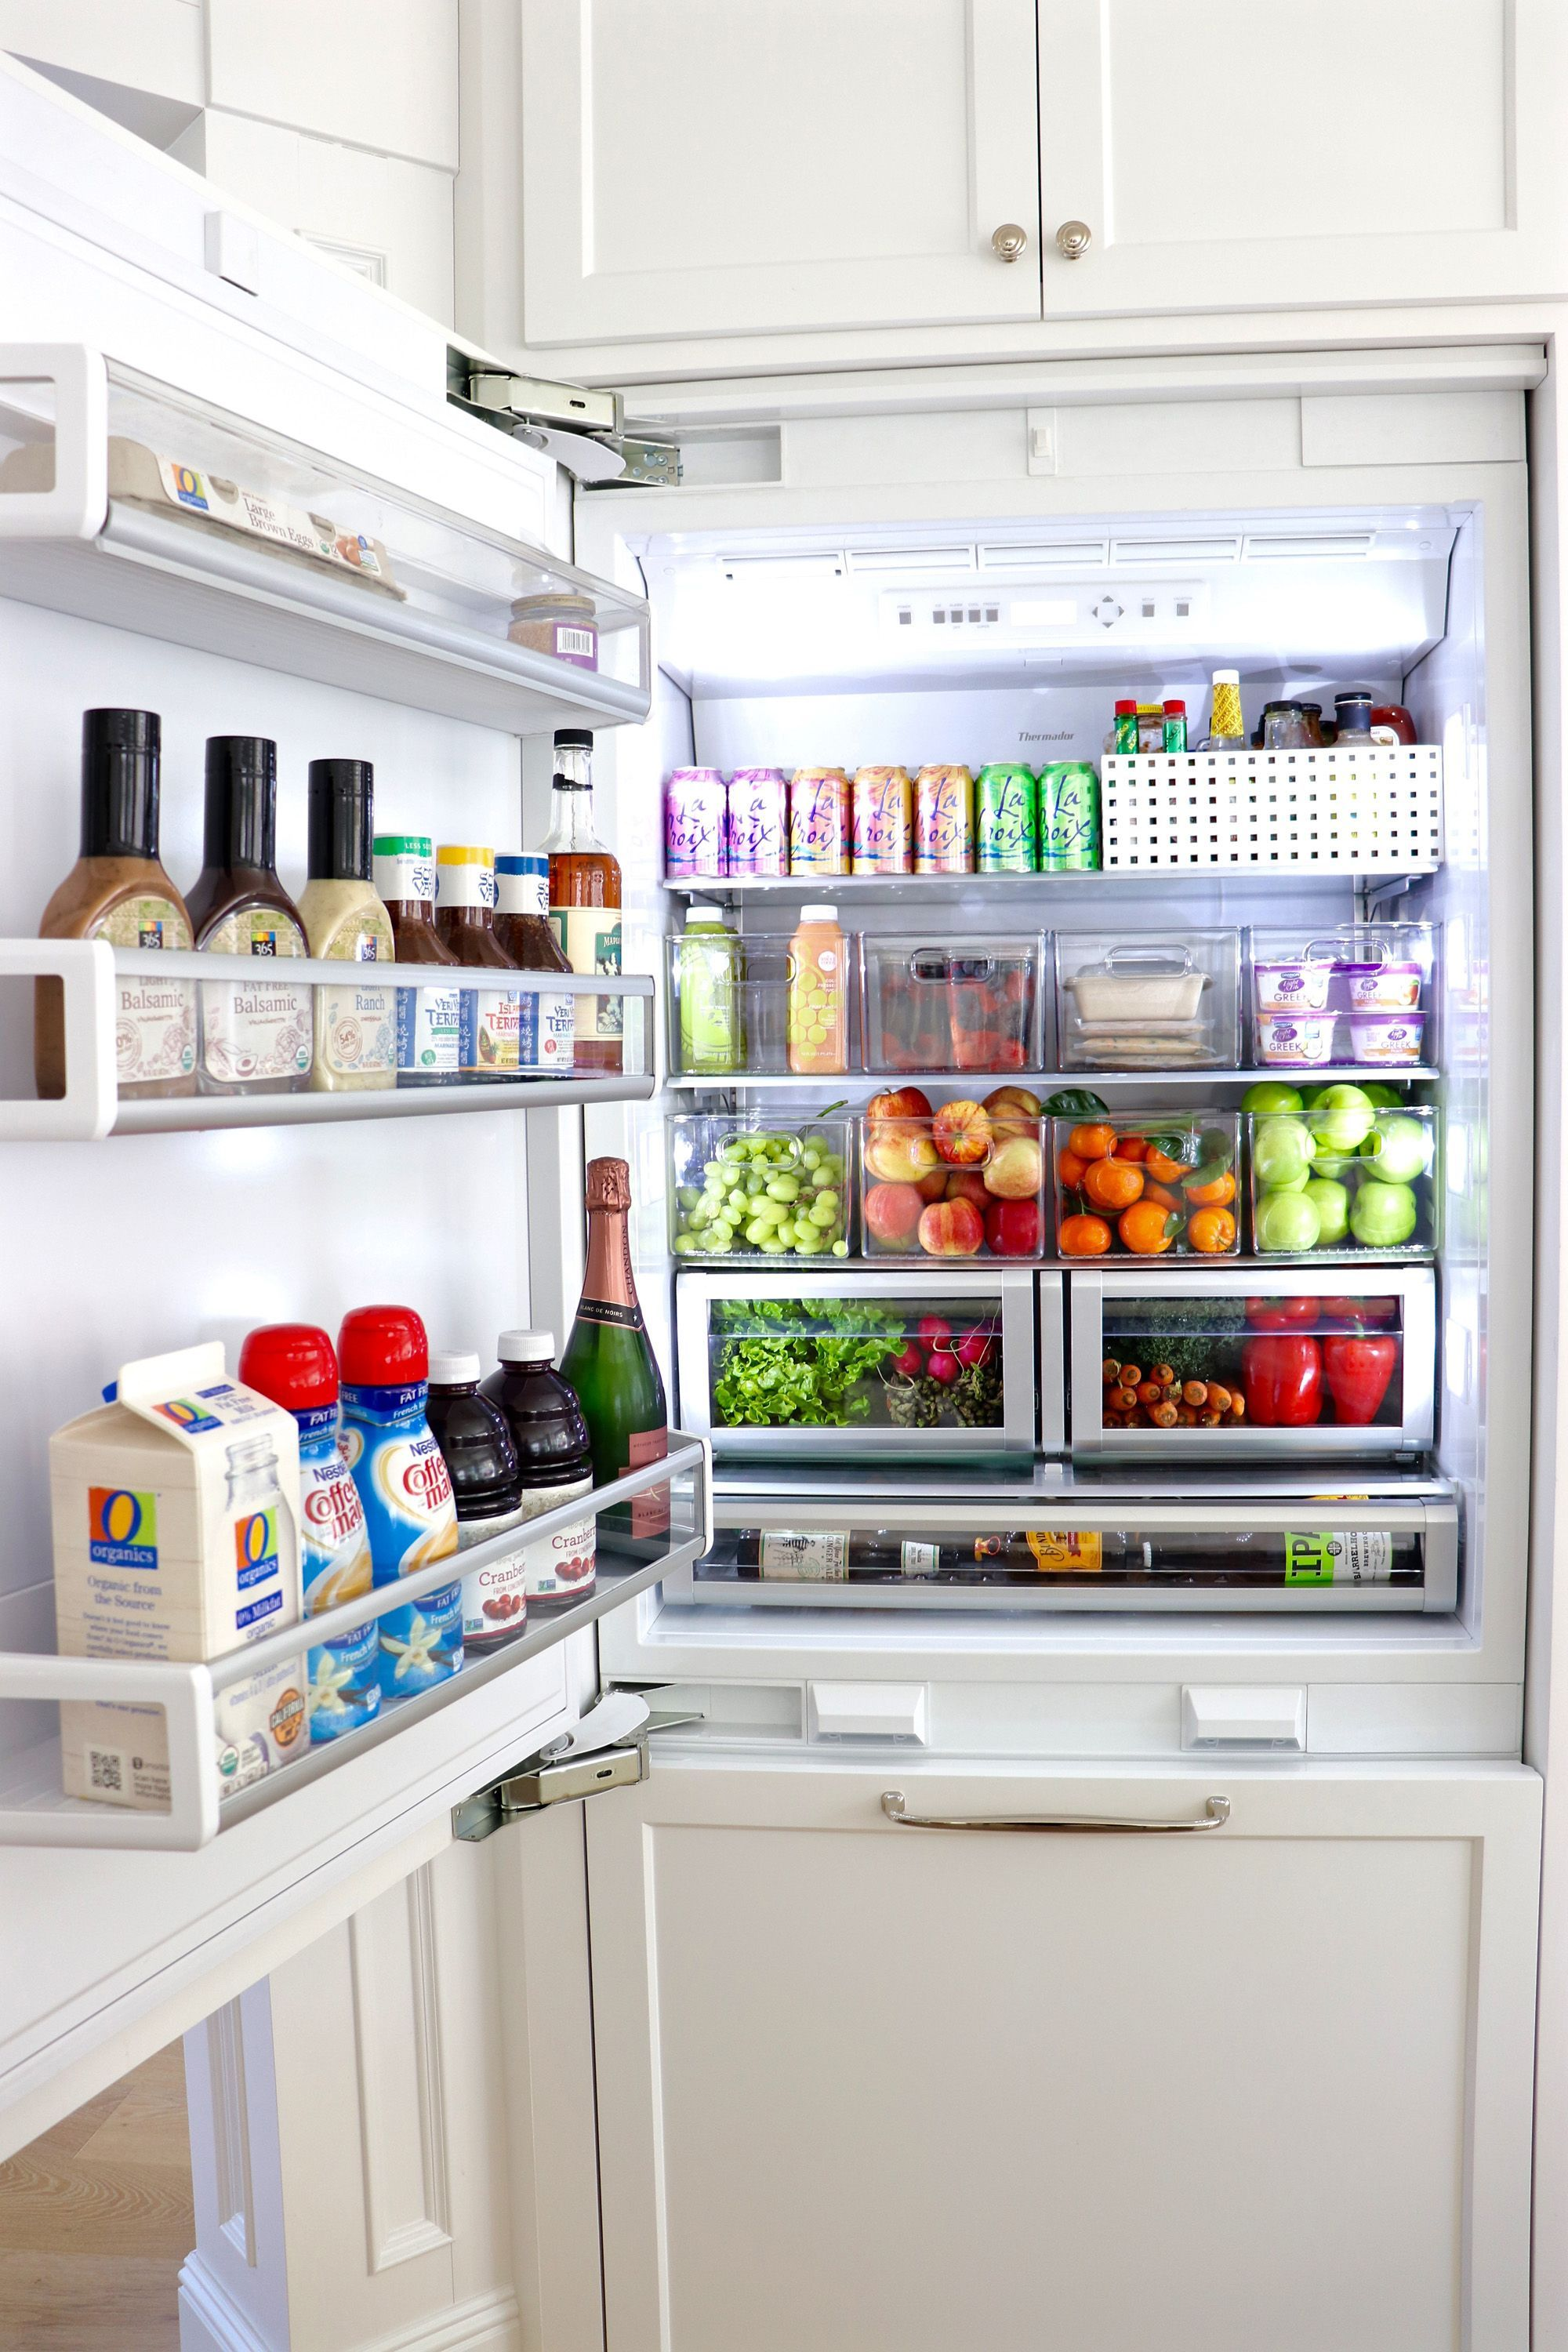 10 tips for organizing your fridge with inspiring before and after photos fridge inspiring on kitchen organization before and after id=93034